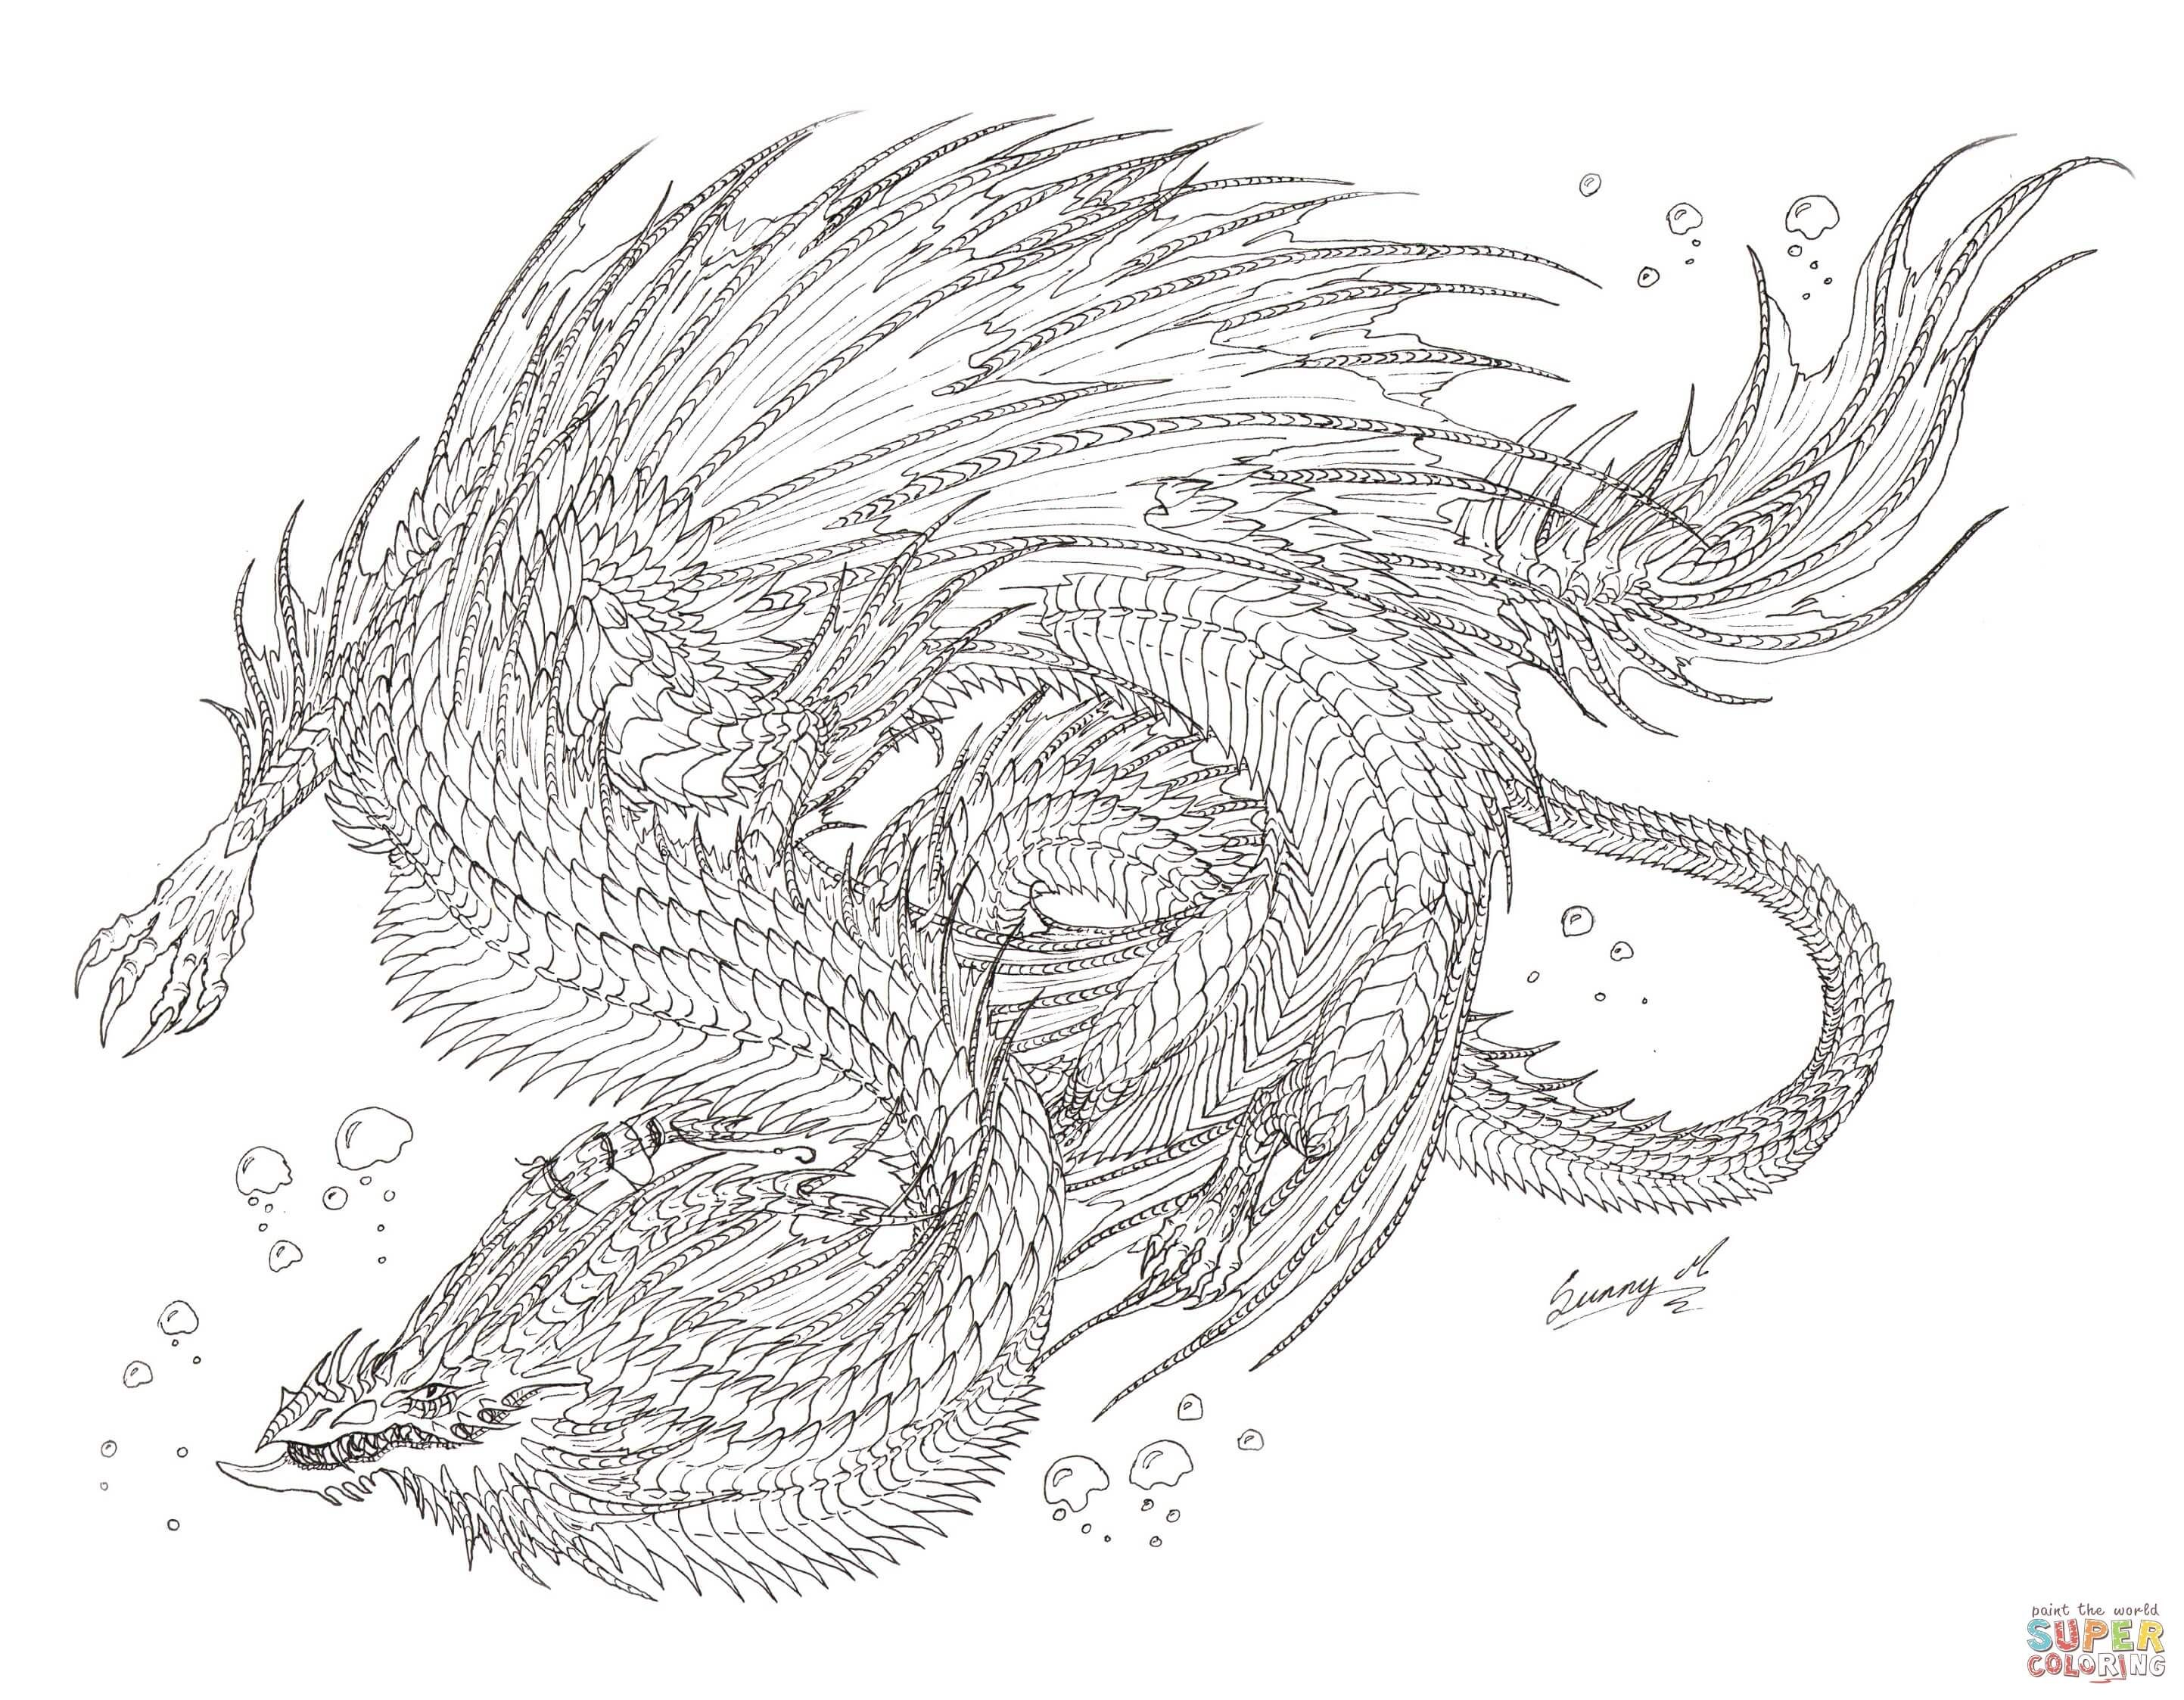 sea serpent dragon coloring page free printable coloring pages